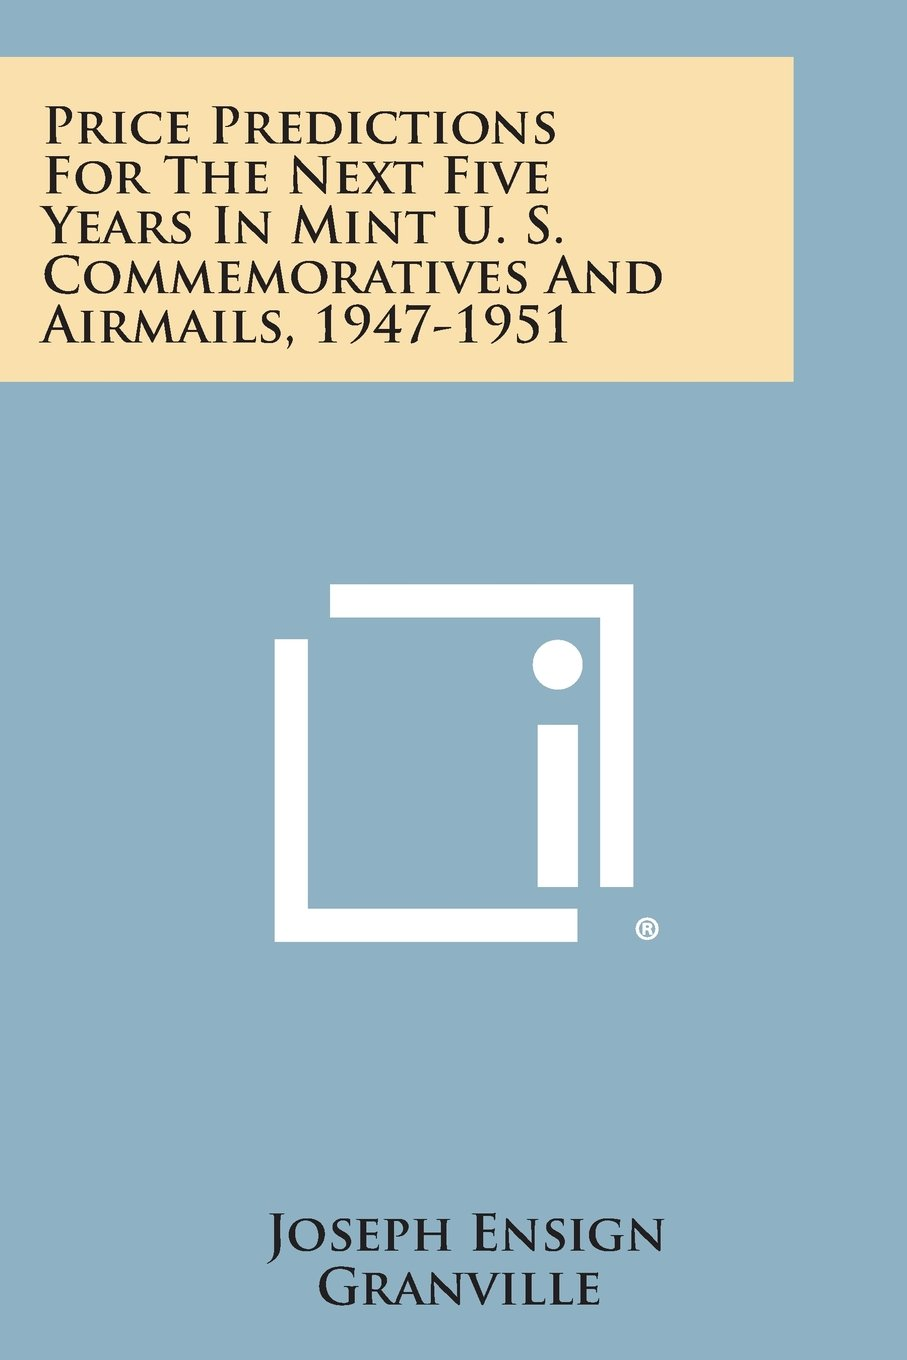 Price Predictions for the Next Five Years in Mint U. S. Commemoratives and Airmails, 1947-1951 pdf